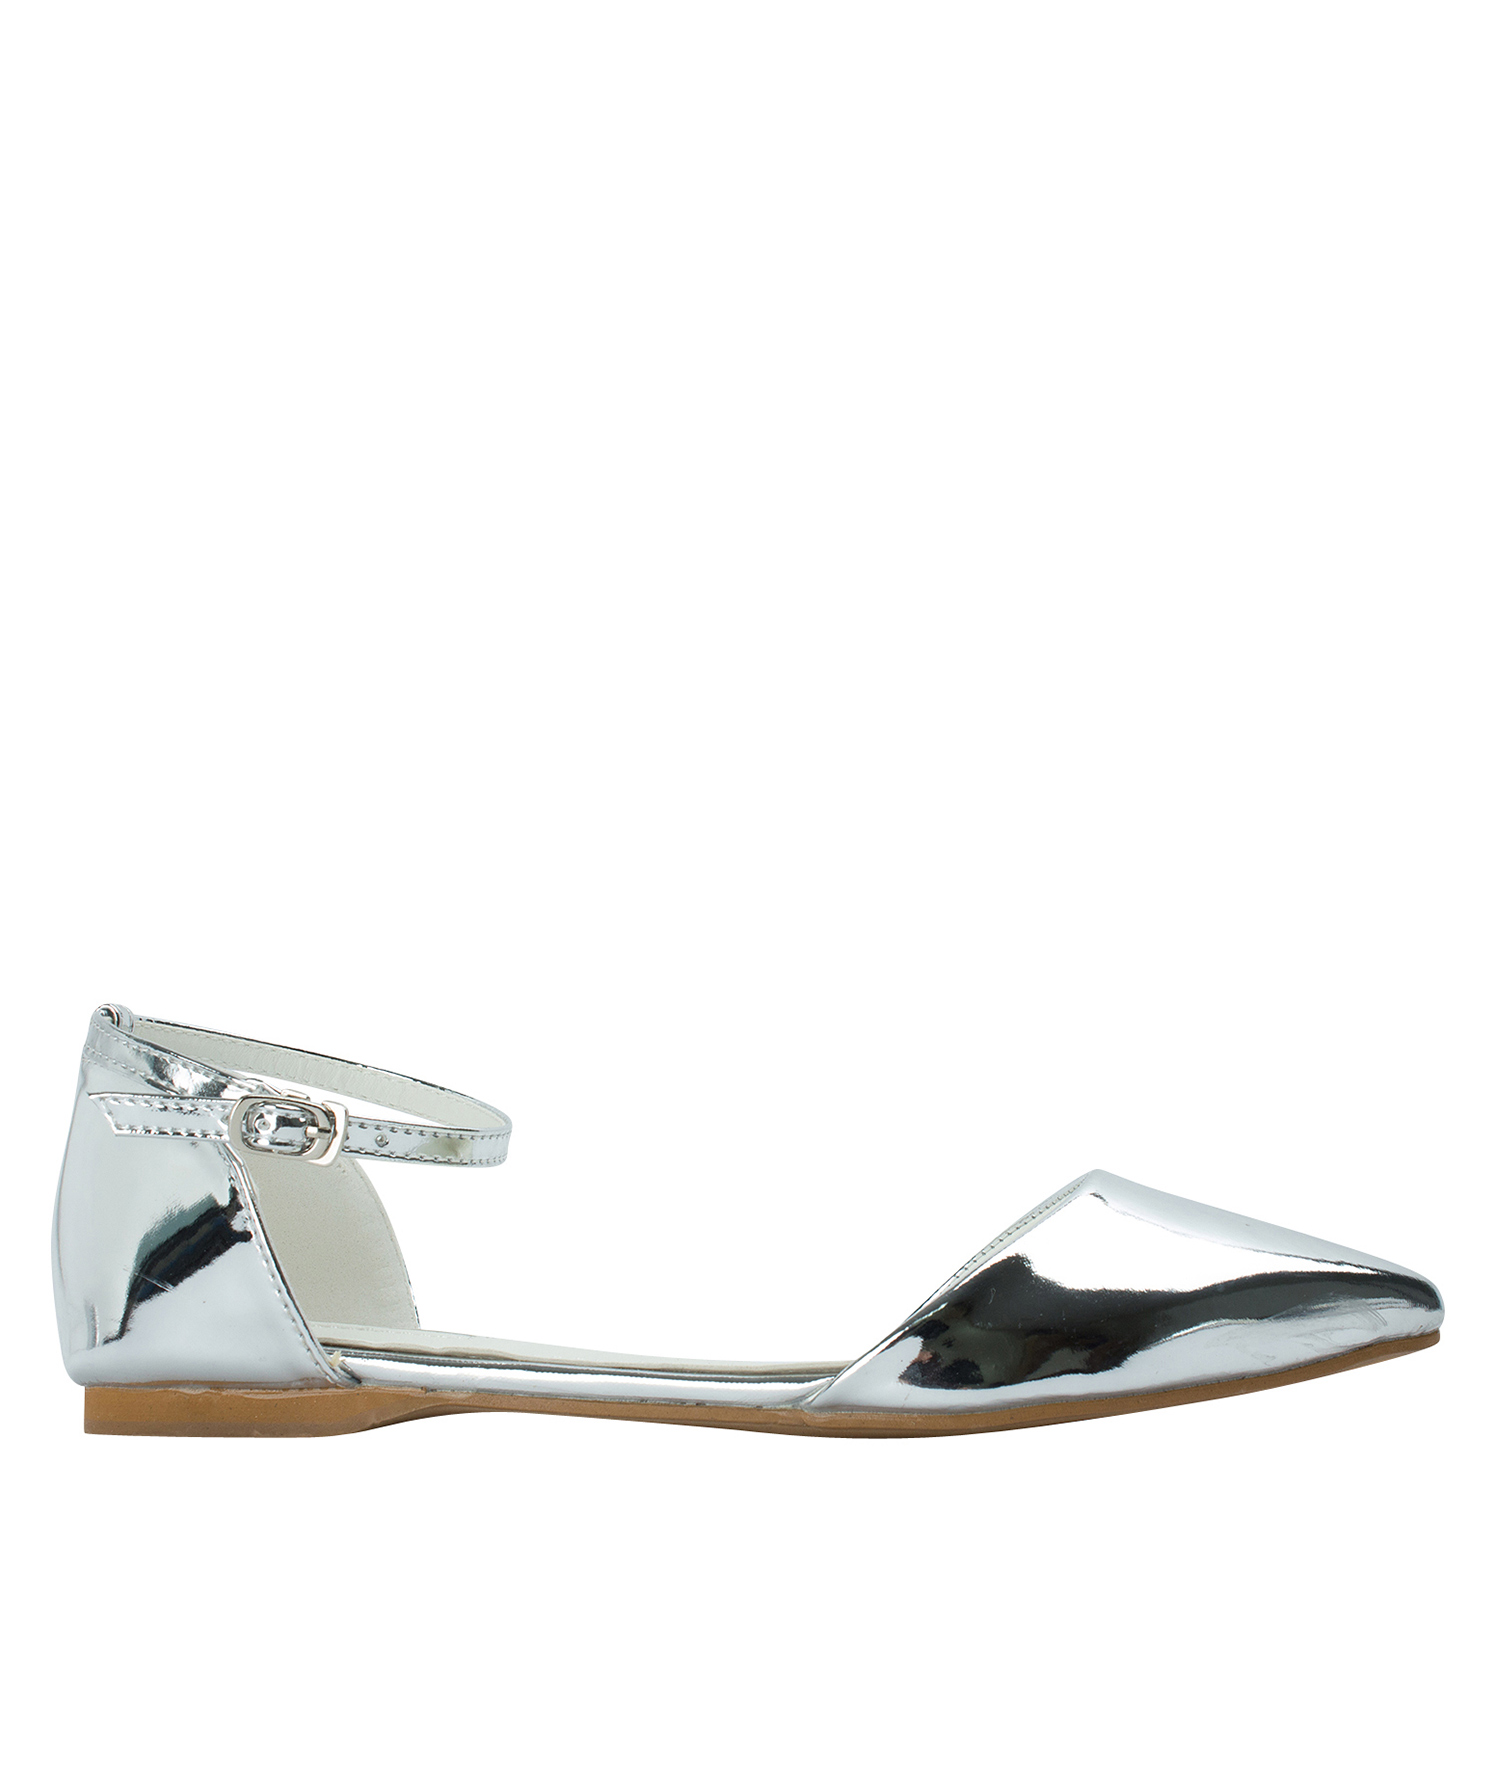 AnnaKastle Womens Pointed Toe Ankle-Strap d'Orsay Flats Silver